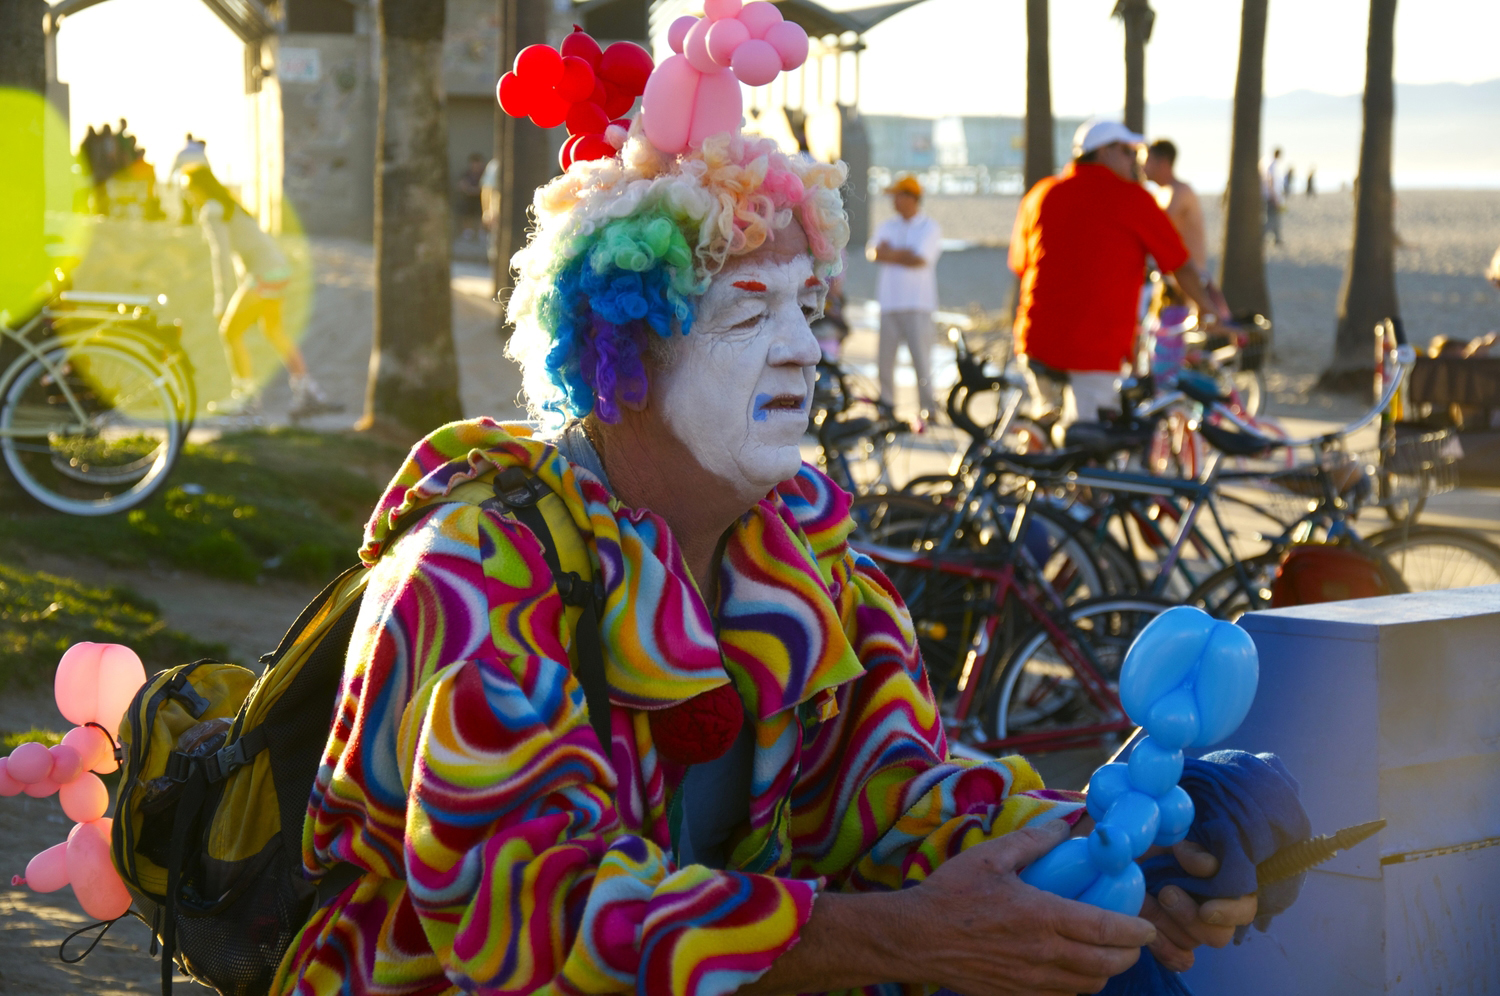 Portrait of a clown in Venice Beach, Los Angeles.